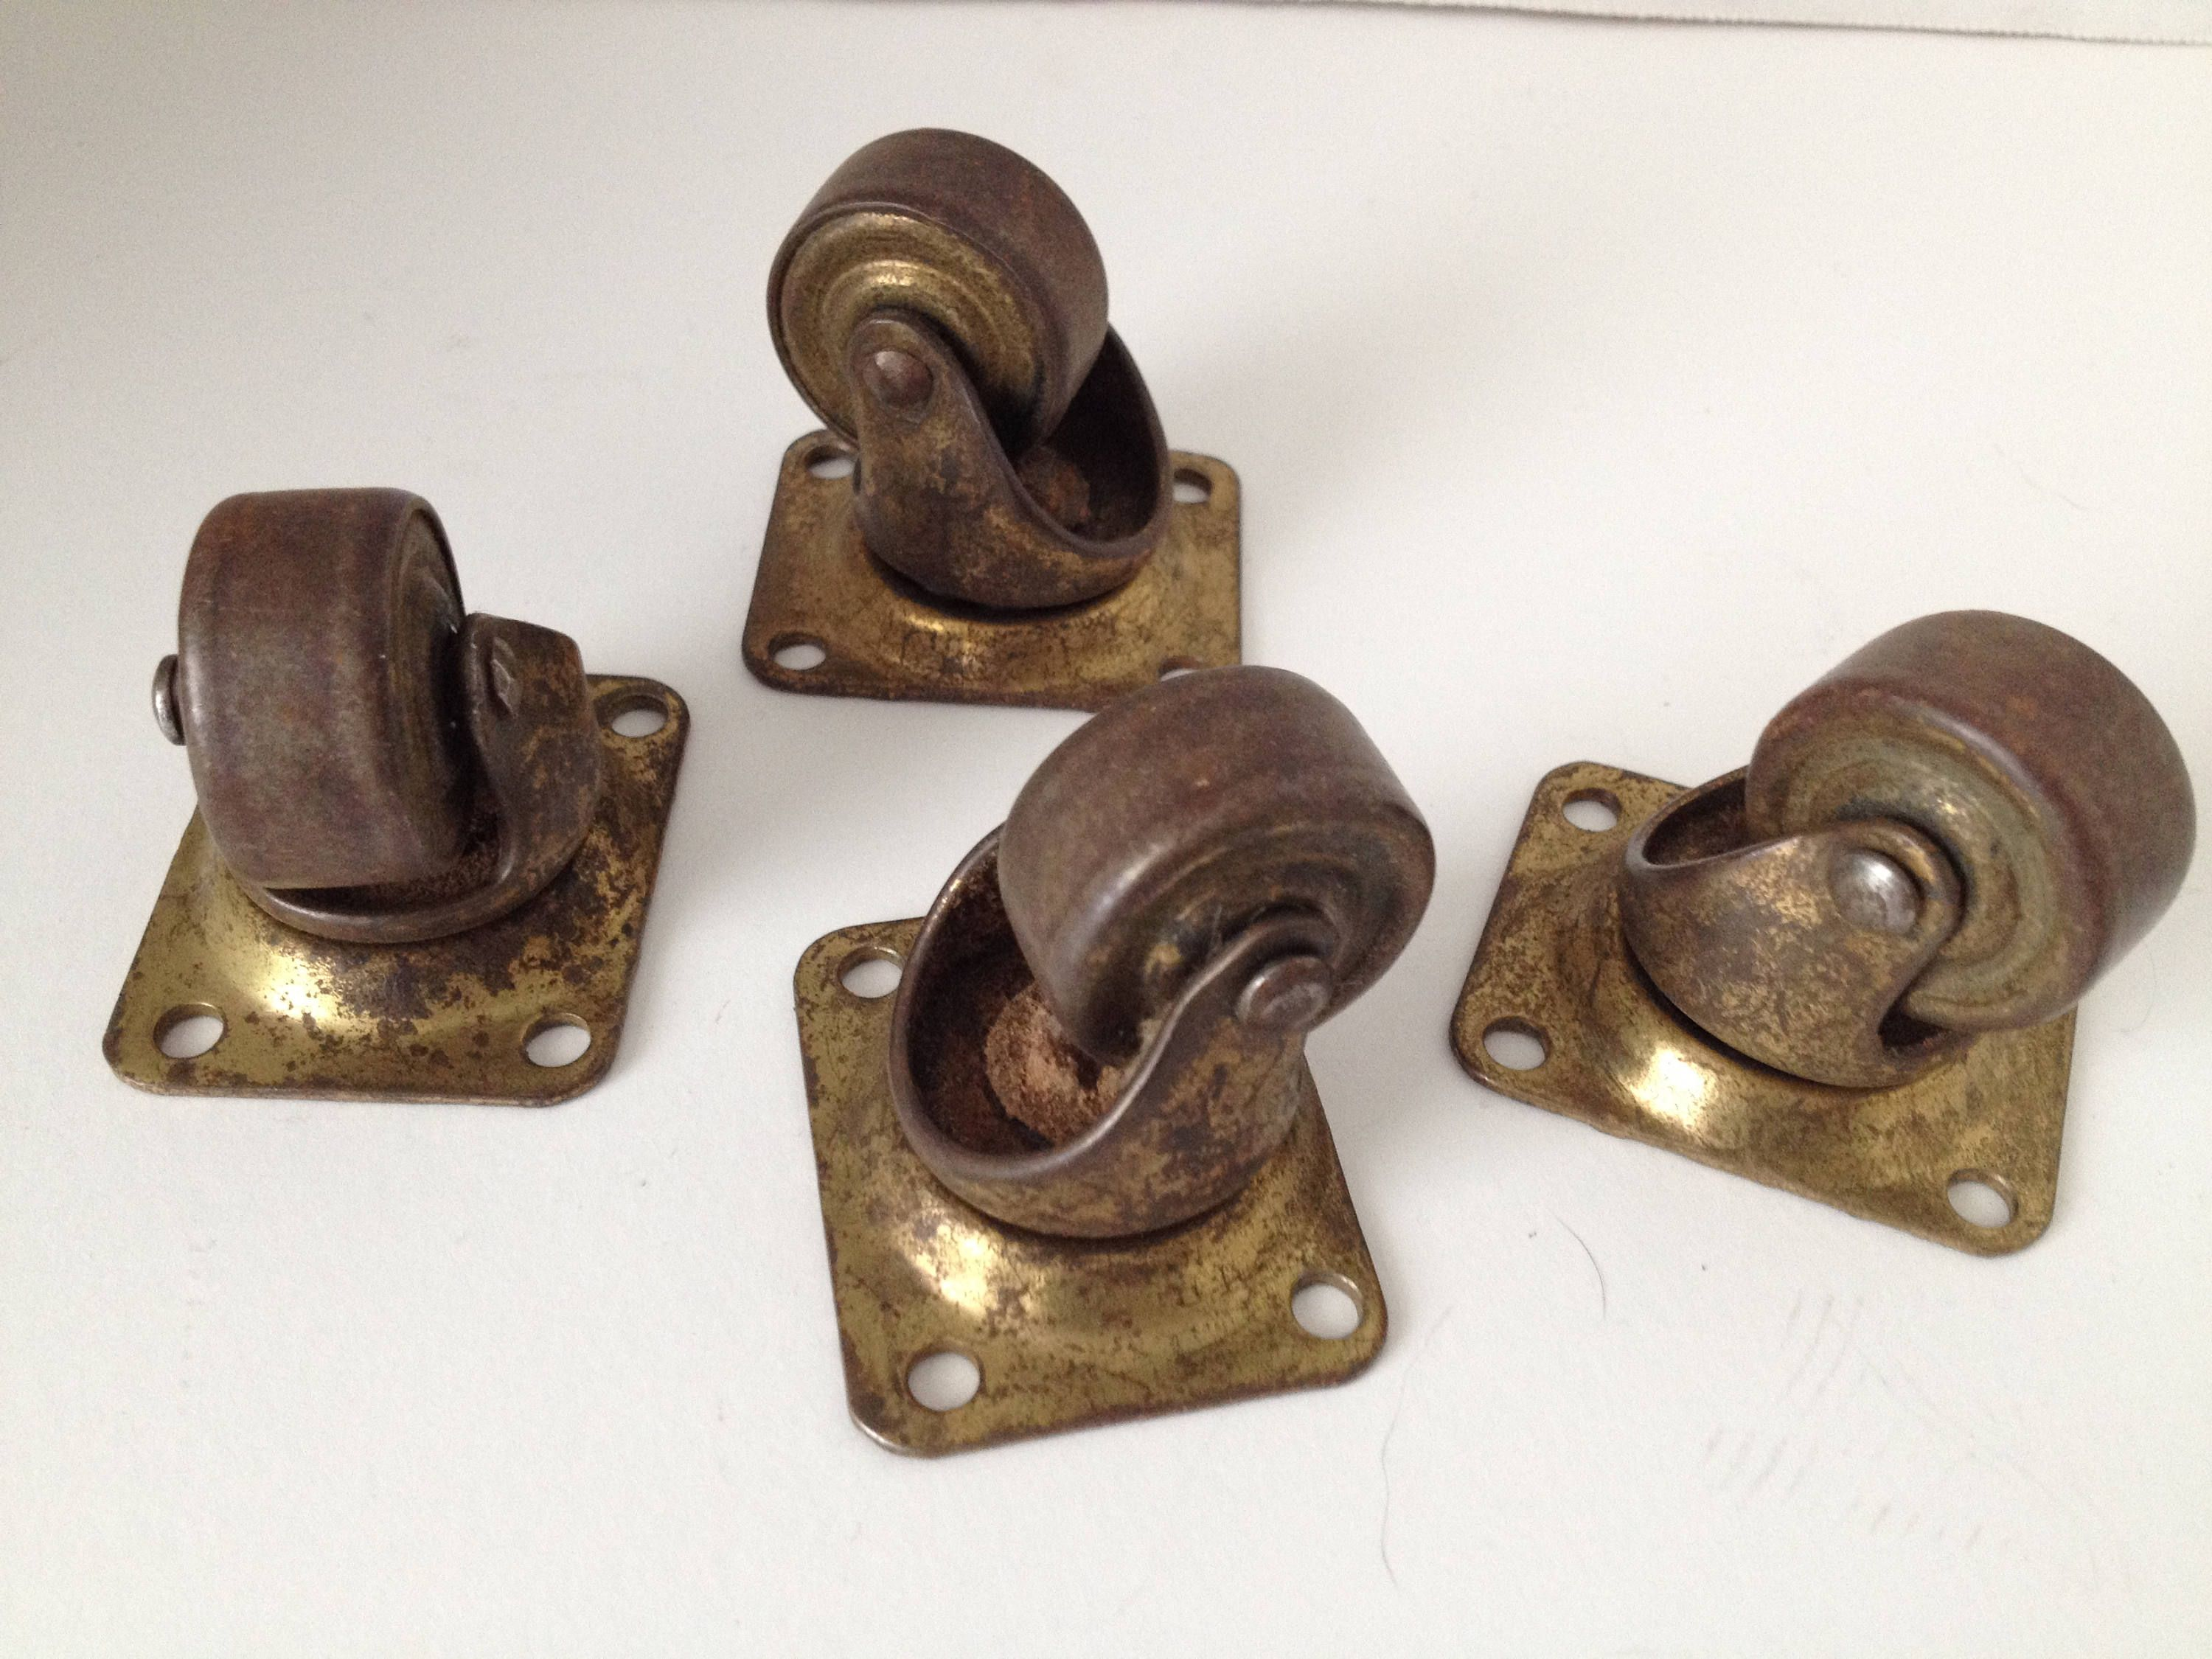 Rotating Plate Caster Wheels Lot Of 4 Industrial 1 Inch Metal Wheel Vintage Furniture Hardware By Arou Vintage Hardware Architectural Pieces Furniture Hardware